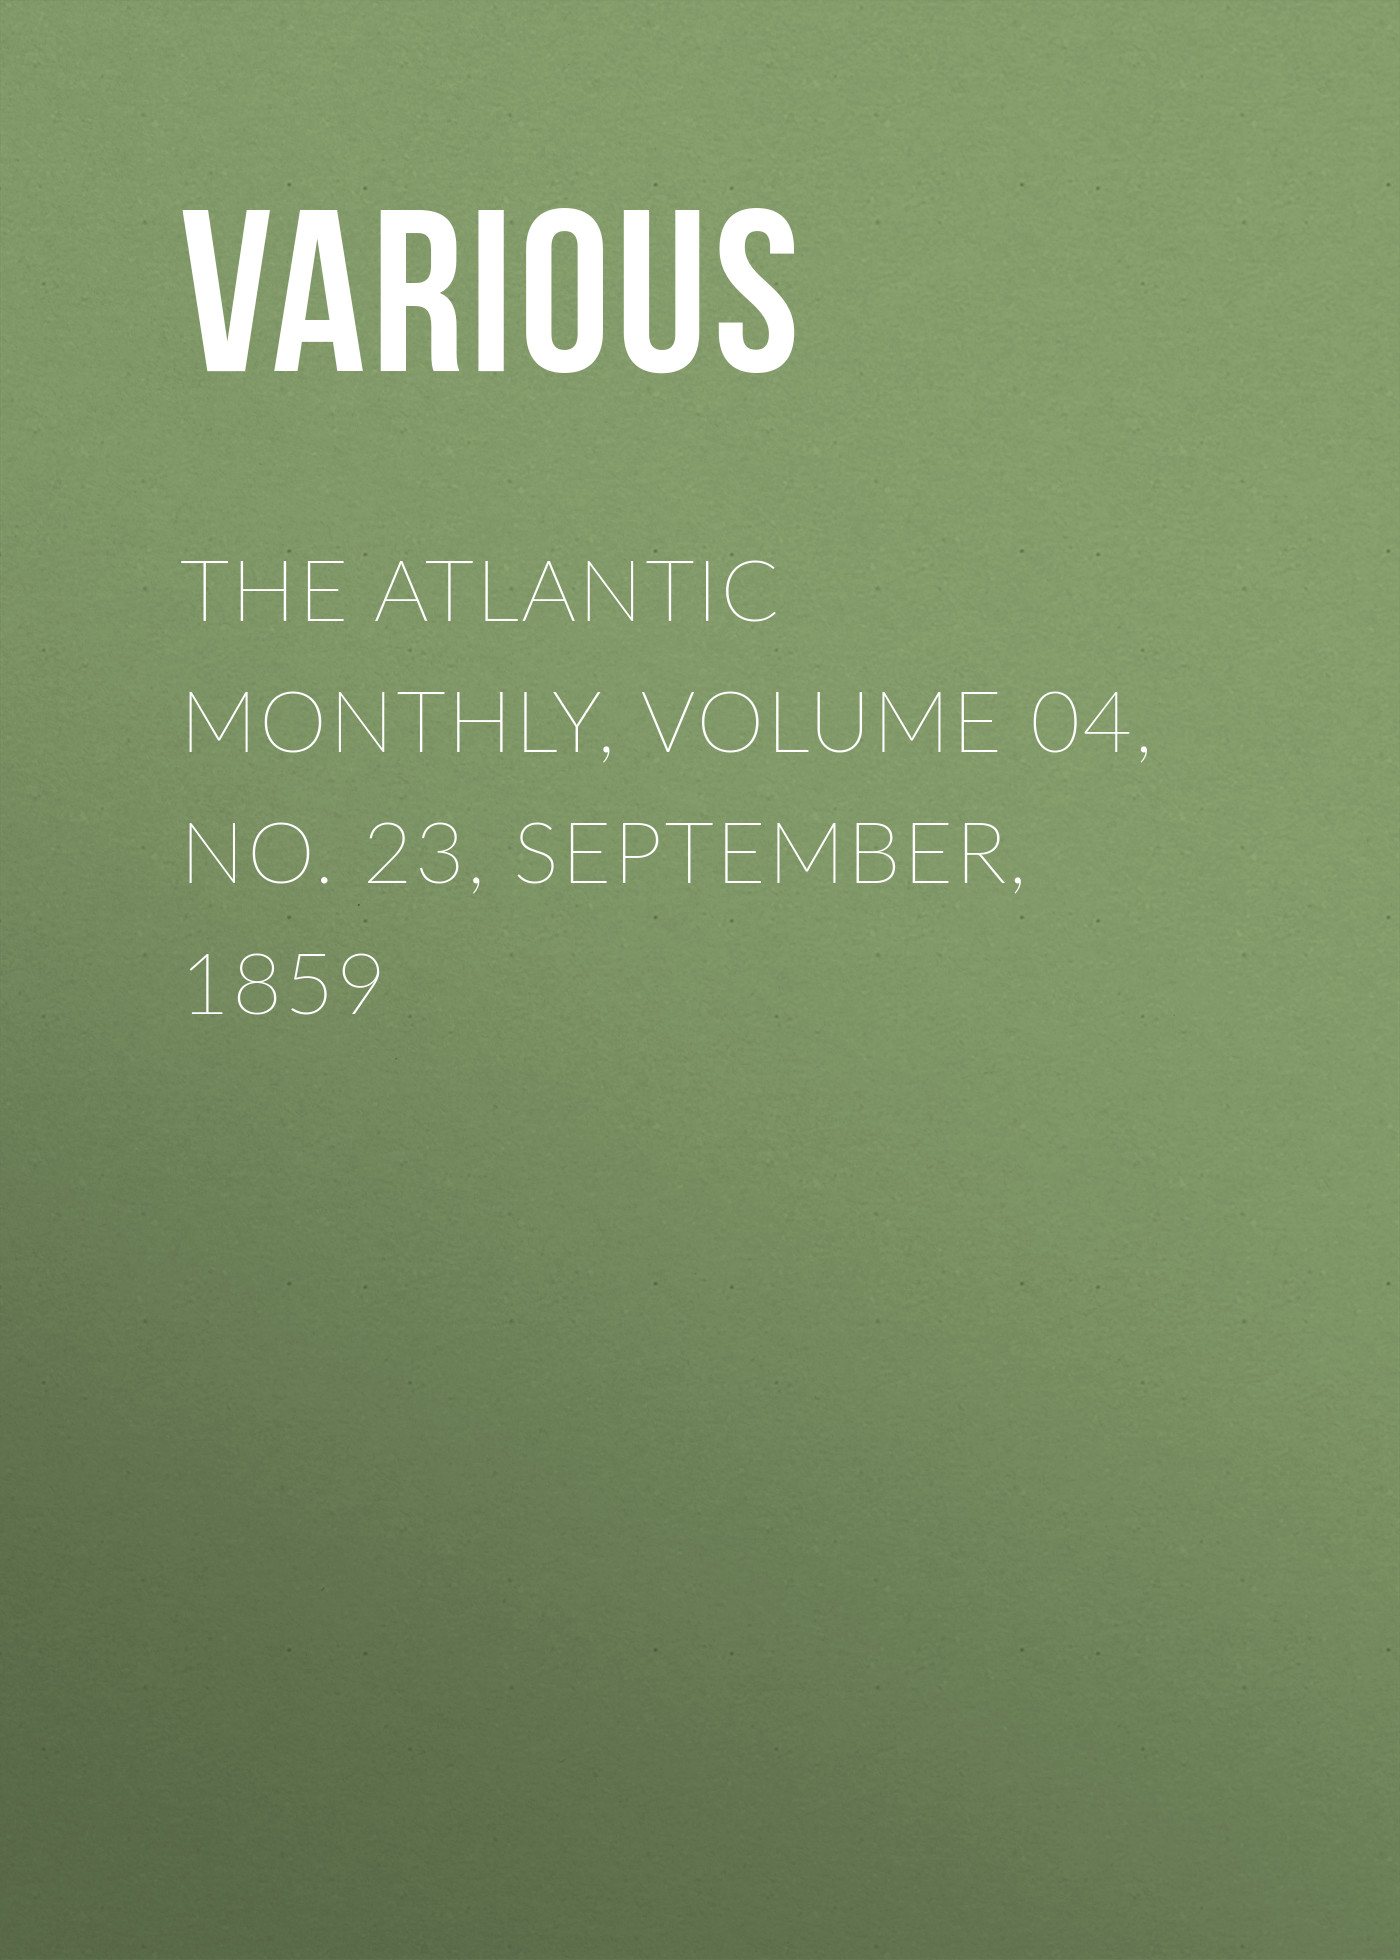 The Atlantic Monthly, Volume 04, No. 23, September, 1859